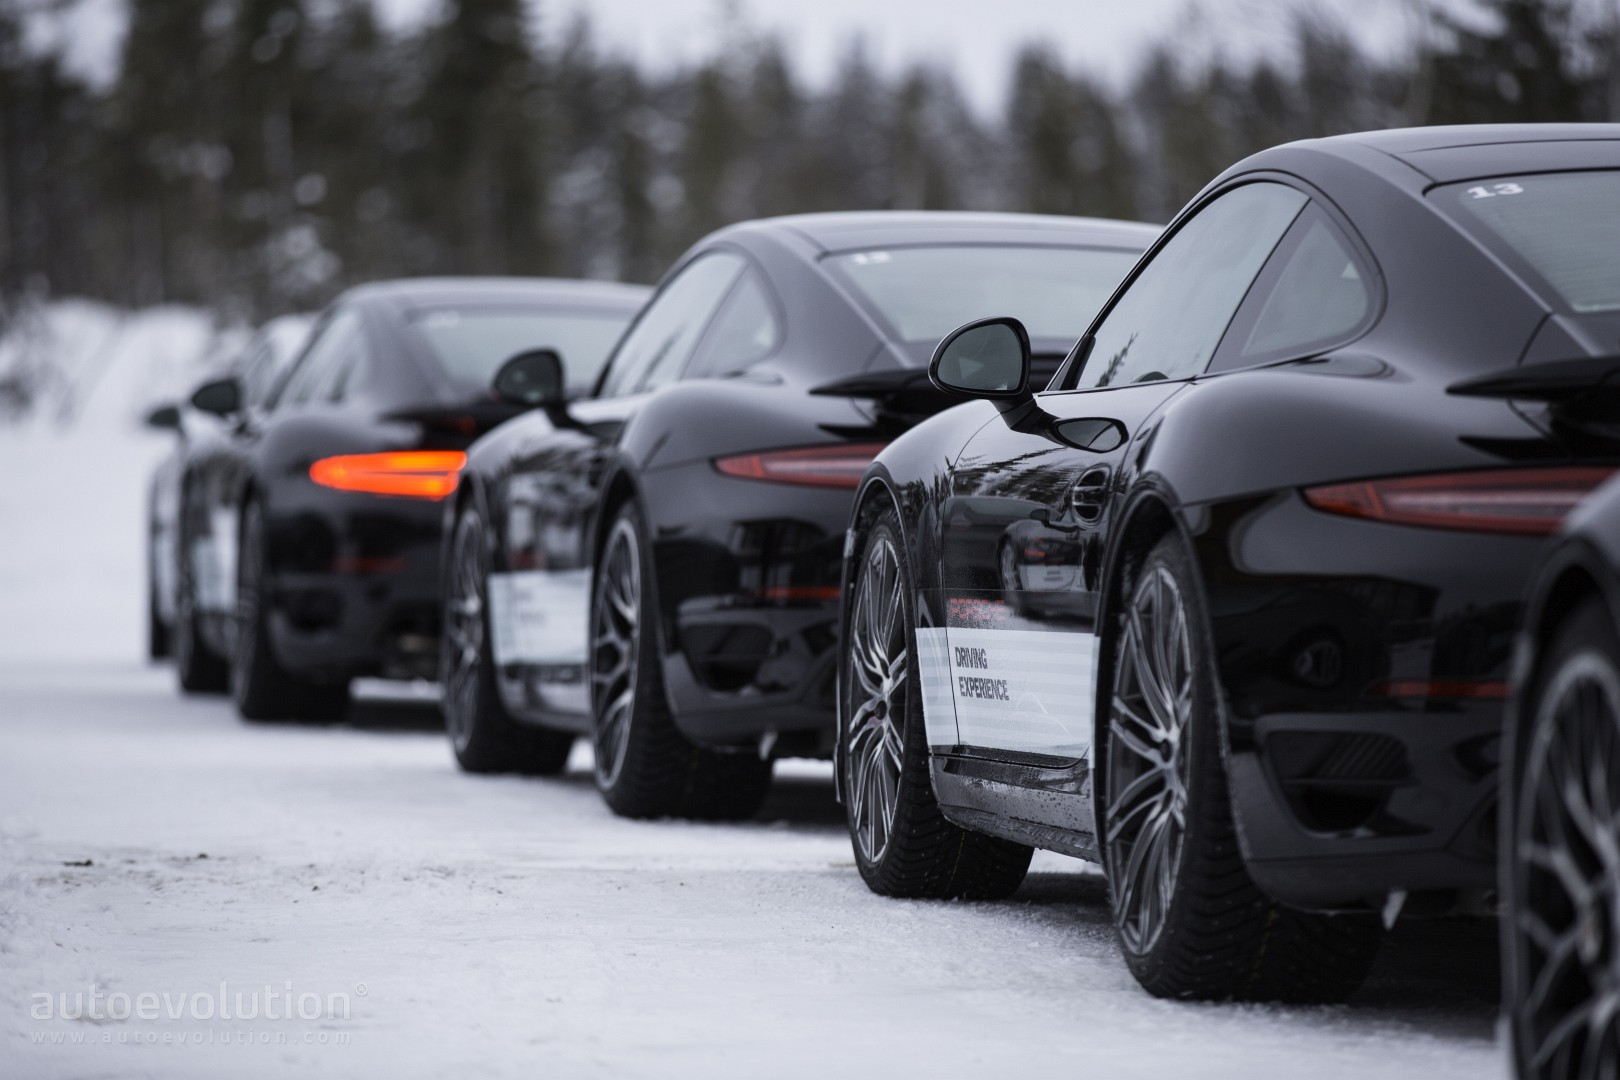 Porsche Driving Experience >> Porsche Winter Driving Experience May The Ice Force Be With You